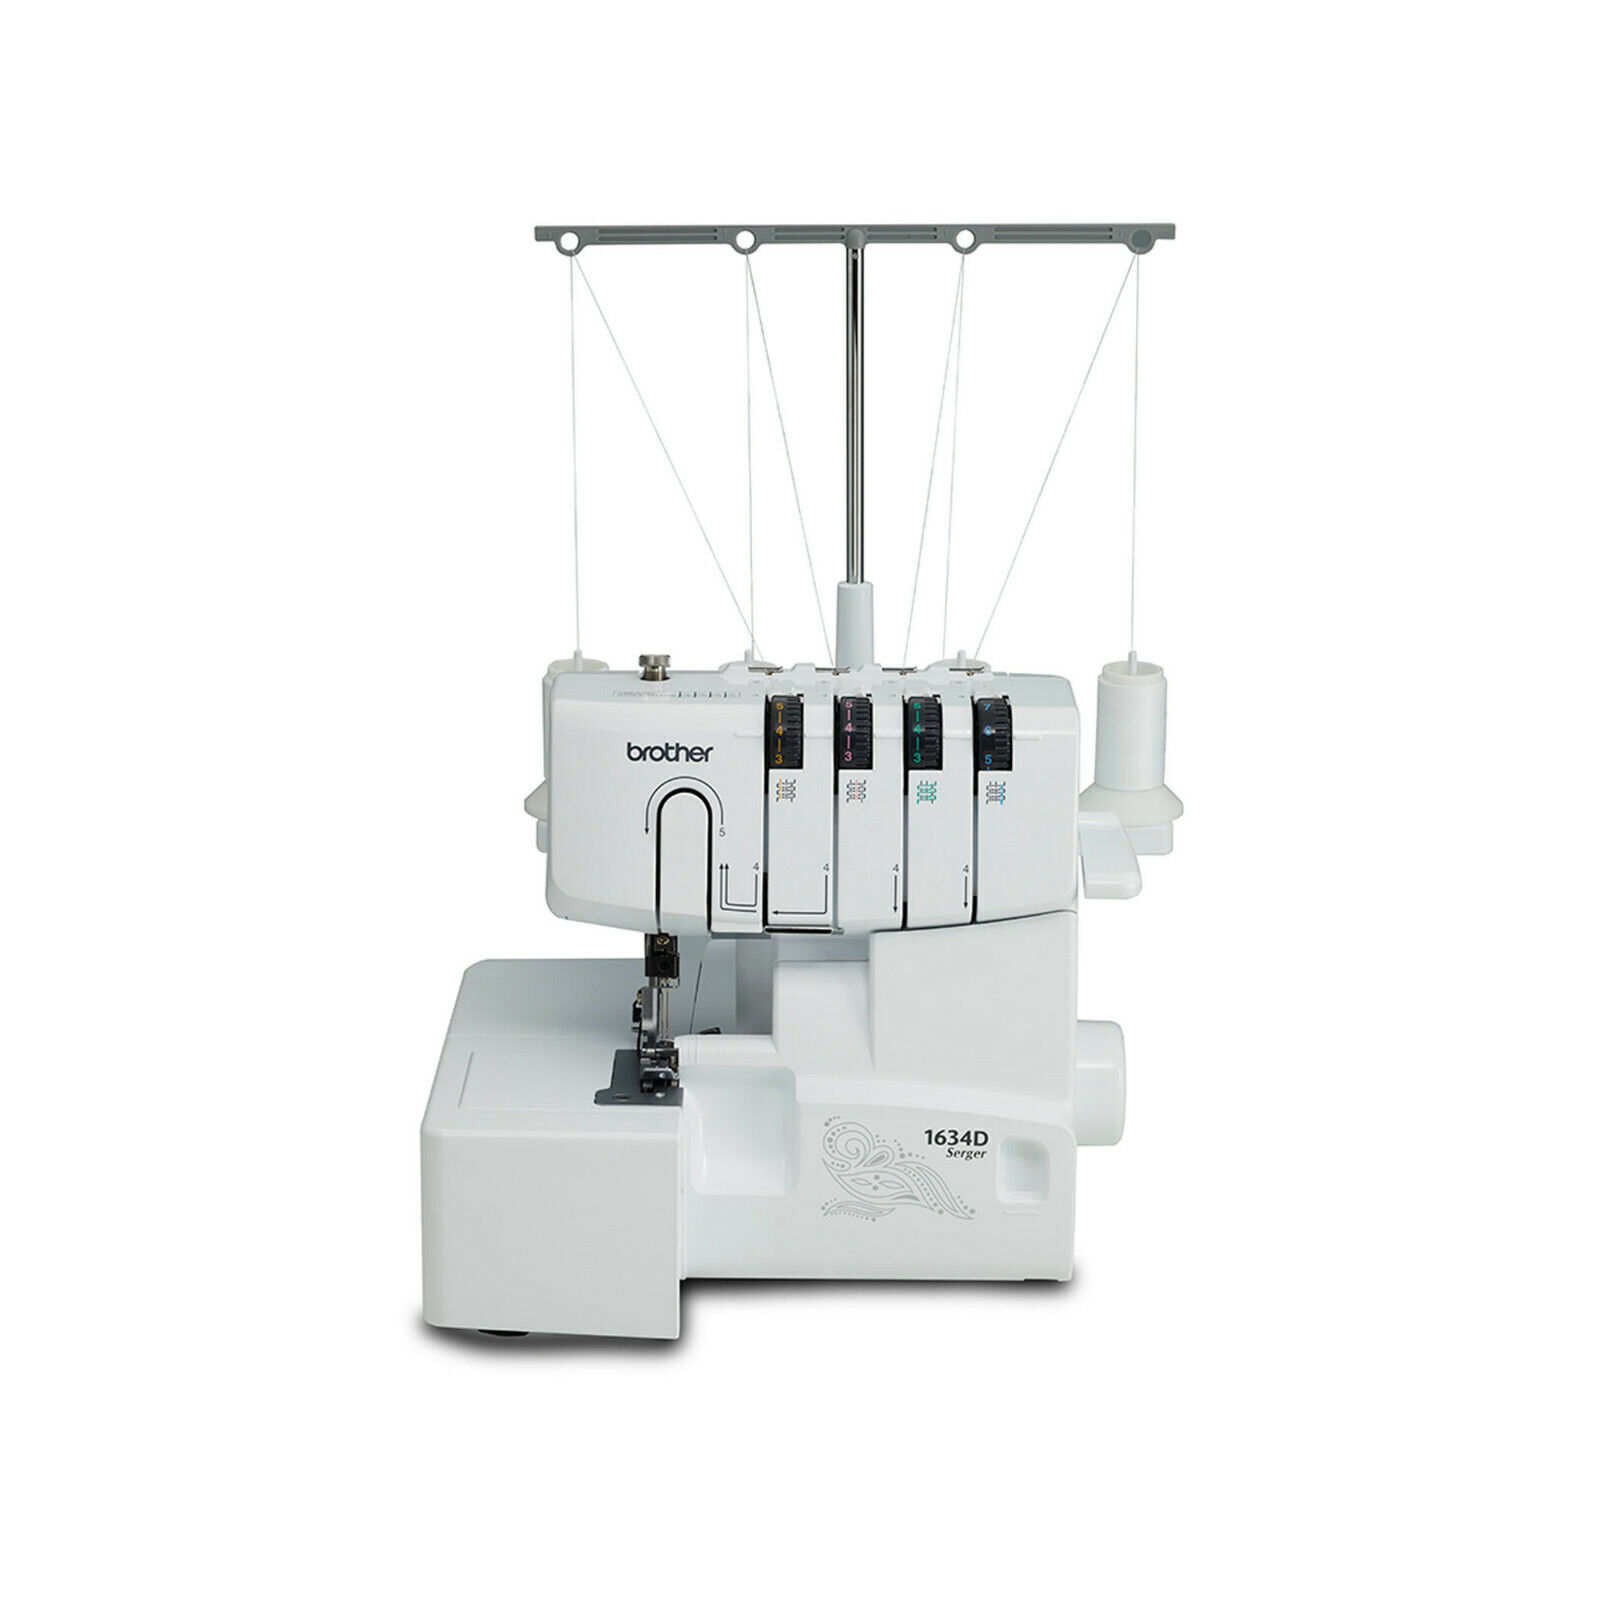 Brother 1634D 3 or 4 Thread Serger Differential Feed Soft Co